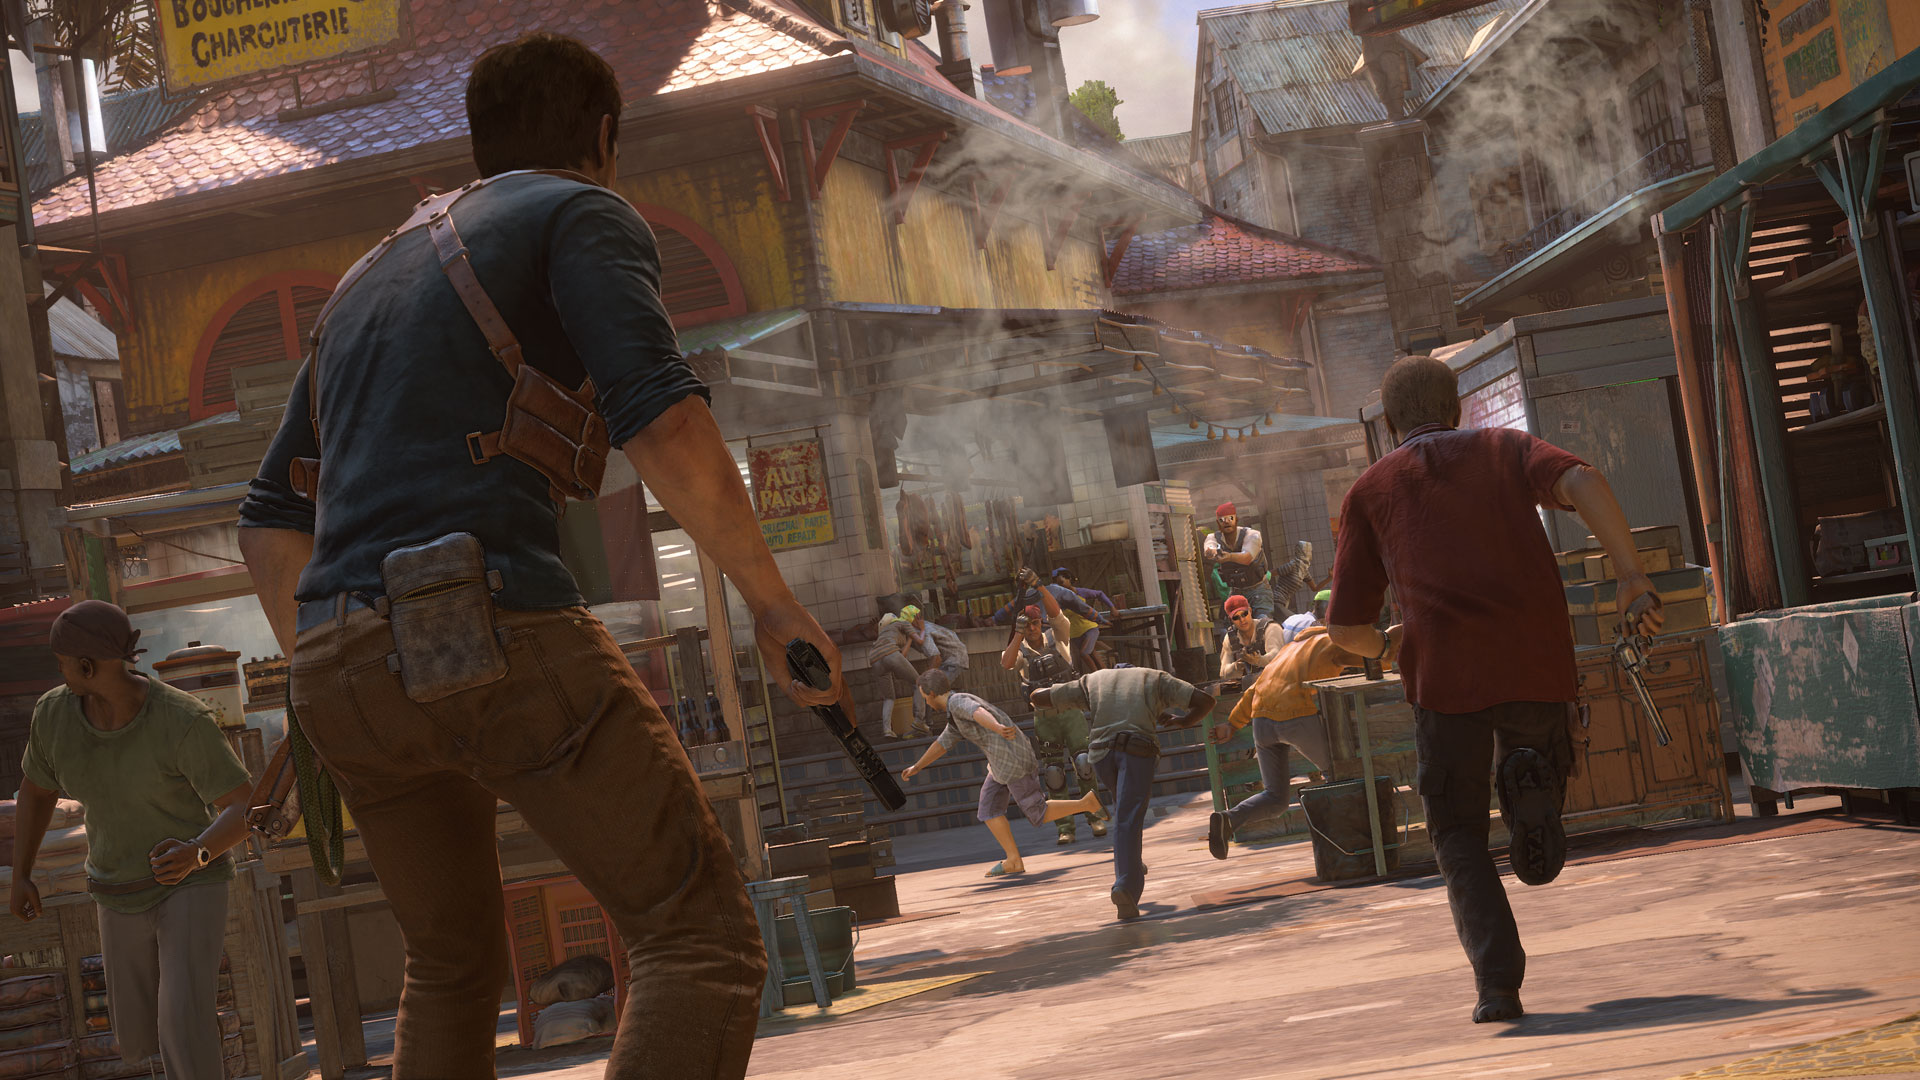 Uncharted-4_enemies-approach_1434547668